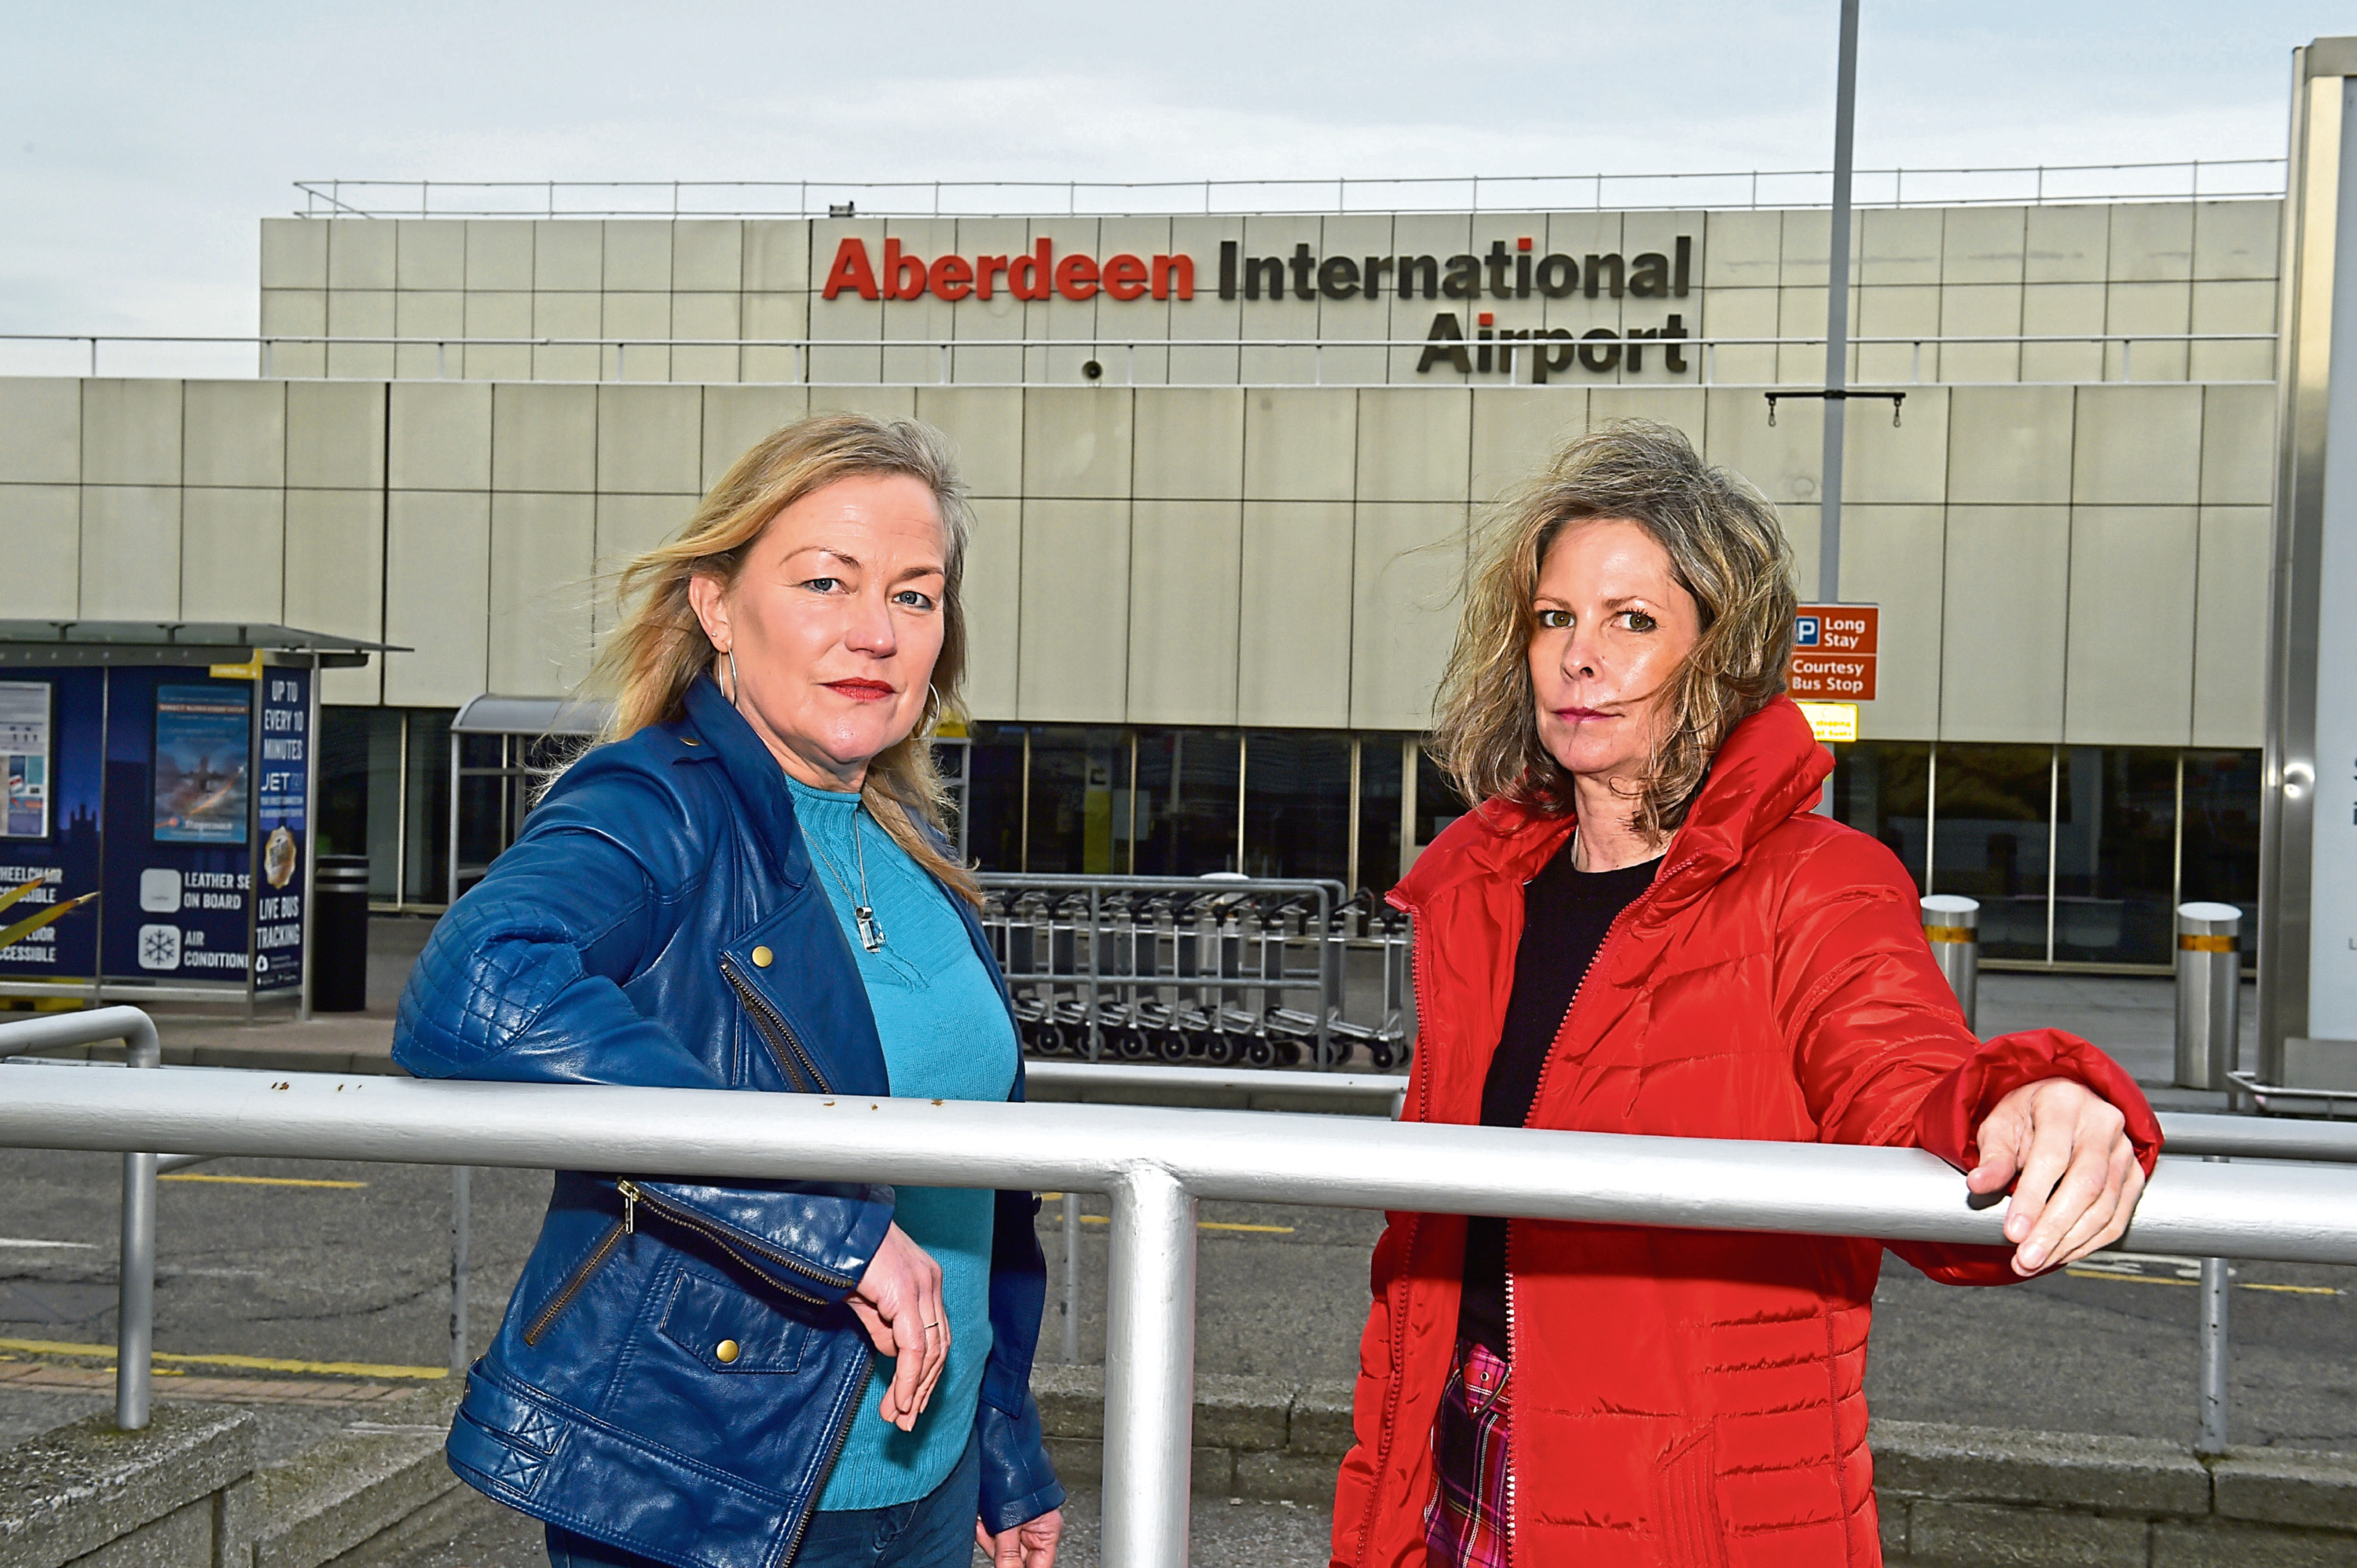 Val Fry and Rachael May have started a petition aimed at persuading easyjet to restart a route between Aberdeen and Gatwick